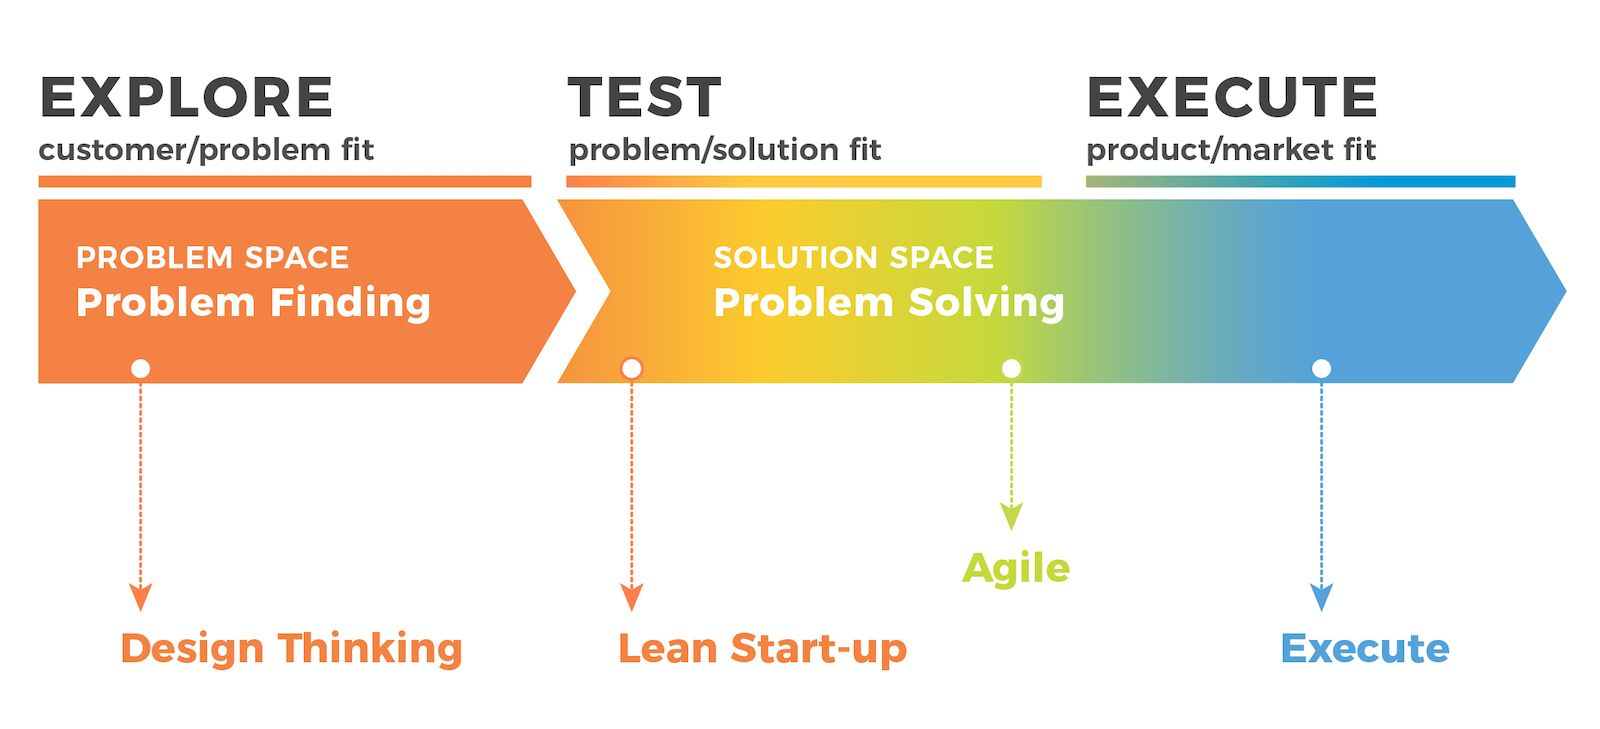 design thinking in innovation lifecycle